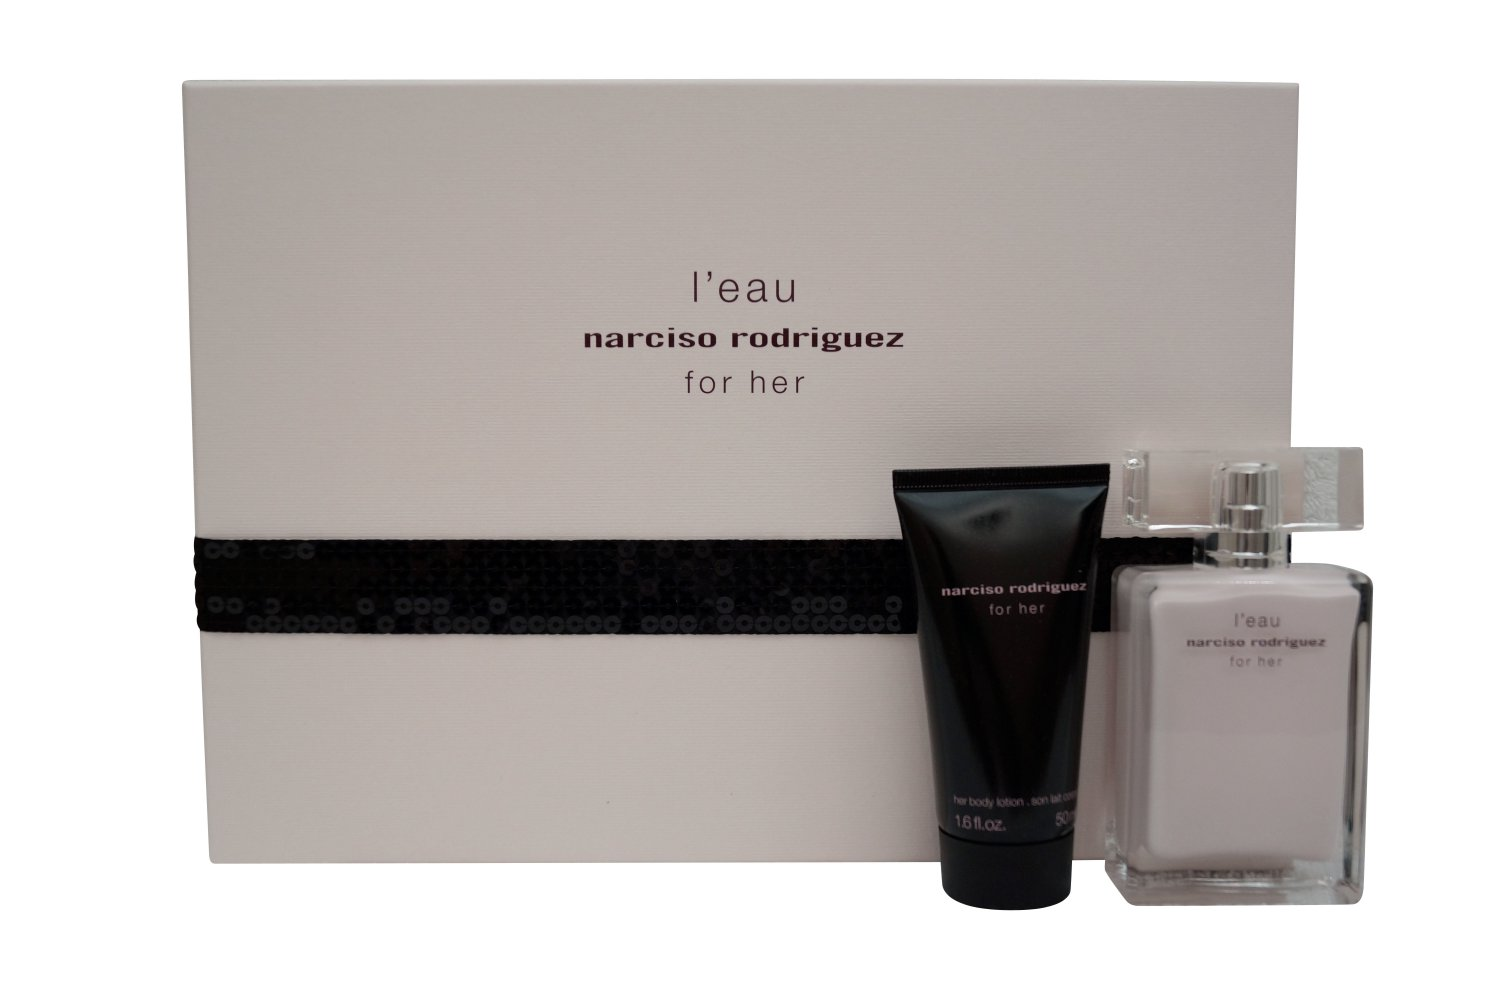 Narciso Rodriguez Gift Set Narciso Rodriguez L'eau For Her, 1.6 oz.